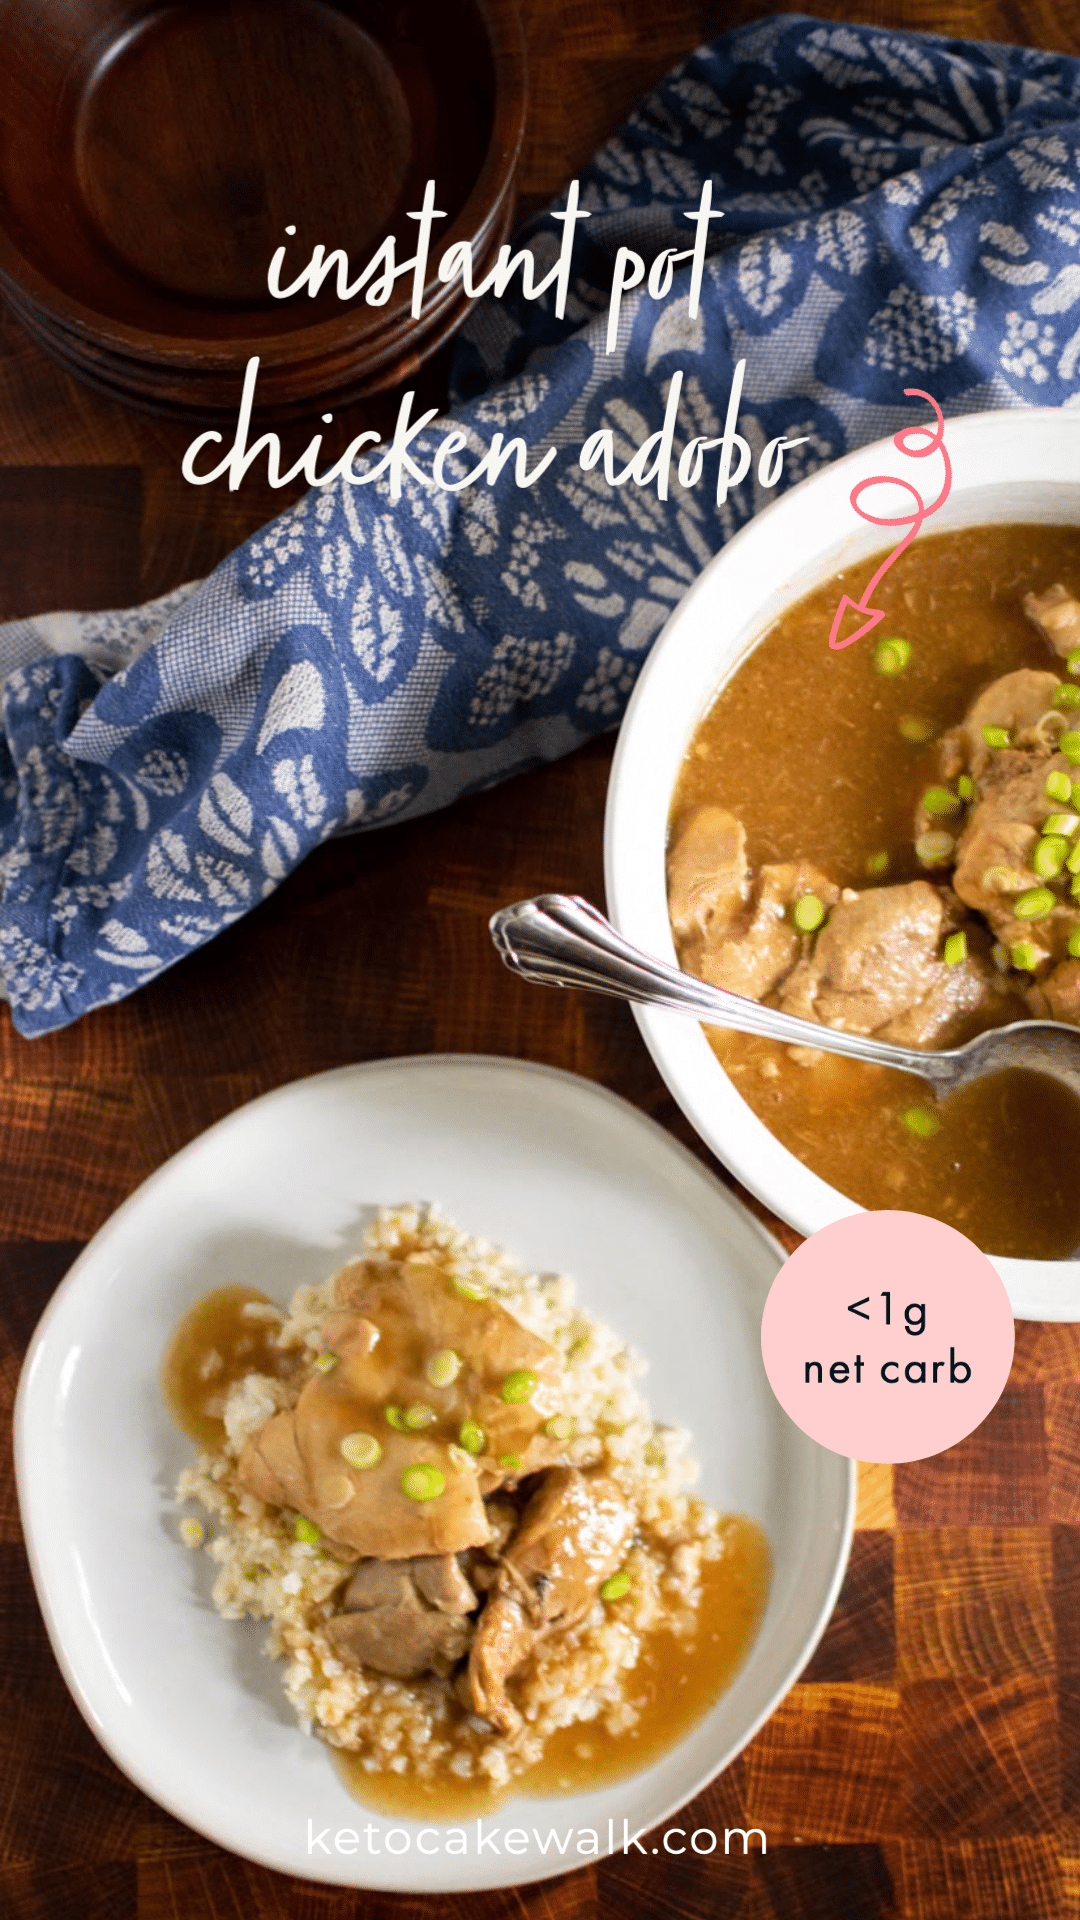 Super easy keto dinner! This chicken adobo cooks super fast in the instant pot and uses frozen chicken! Perfect for busy weeknights. #keto #lowcarb #instantpot #chicken #dinner #filipinofood #adobo #easy #glutenfree #grainfree